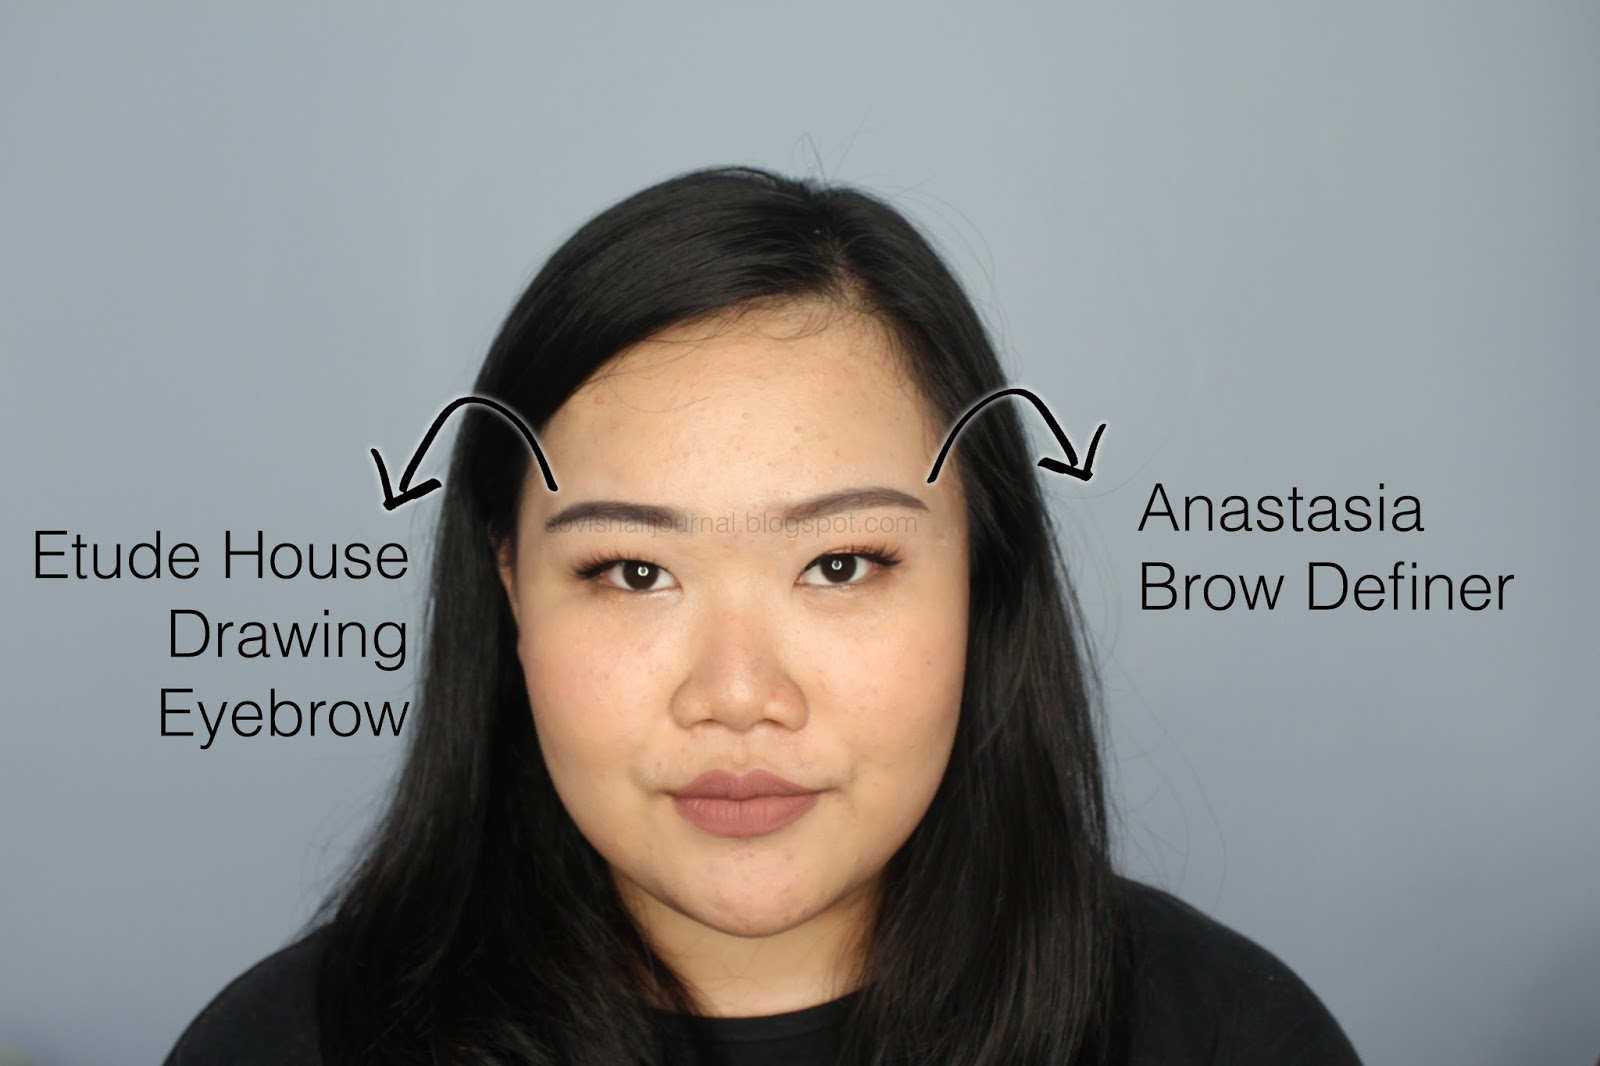 Sovis Nail Journal Anastasia Brow Definer Vs Etude House Drawing